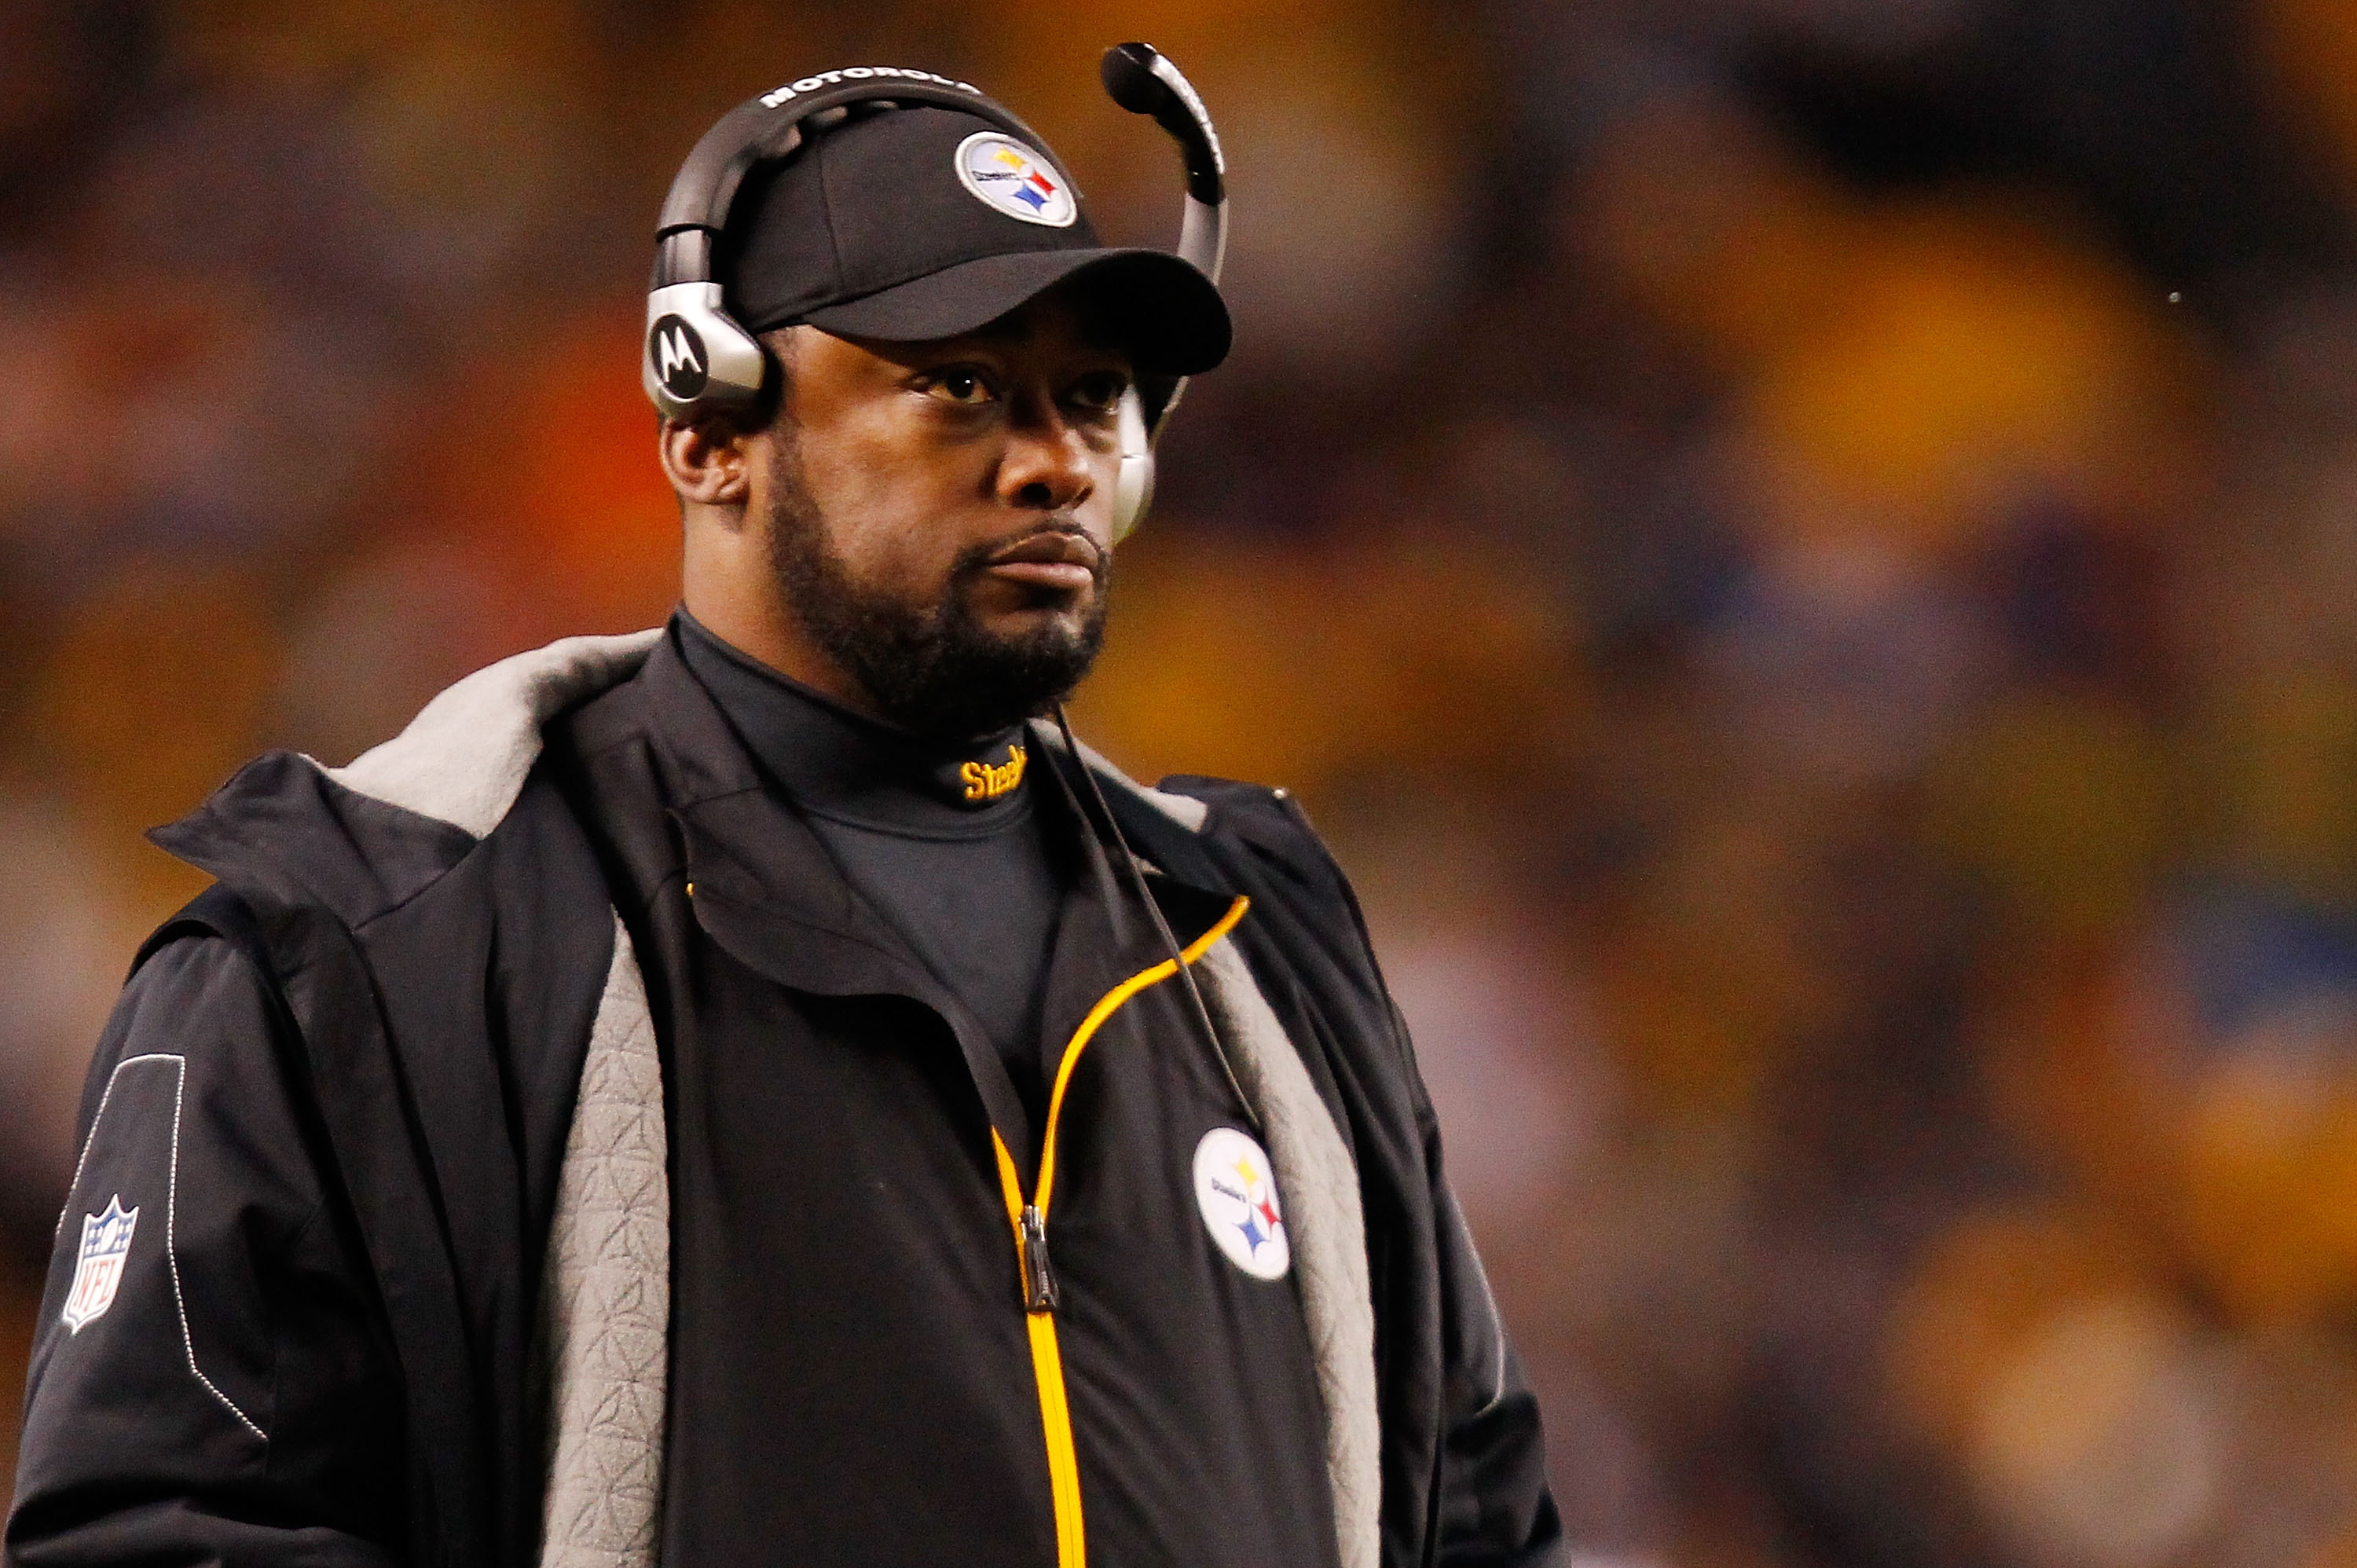 PITTSBURGH - DECEMBER 23:  Head coach Mike Tomlin of the Pittsburgh Steelers watches his team play against the Carolina Panthers during the game on December 23, 2010 at Heinz Field in Pittsburgh, Pennsylvania.  (Photo by Jared Wickerham/Getty Images)